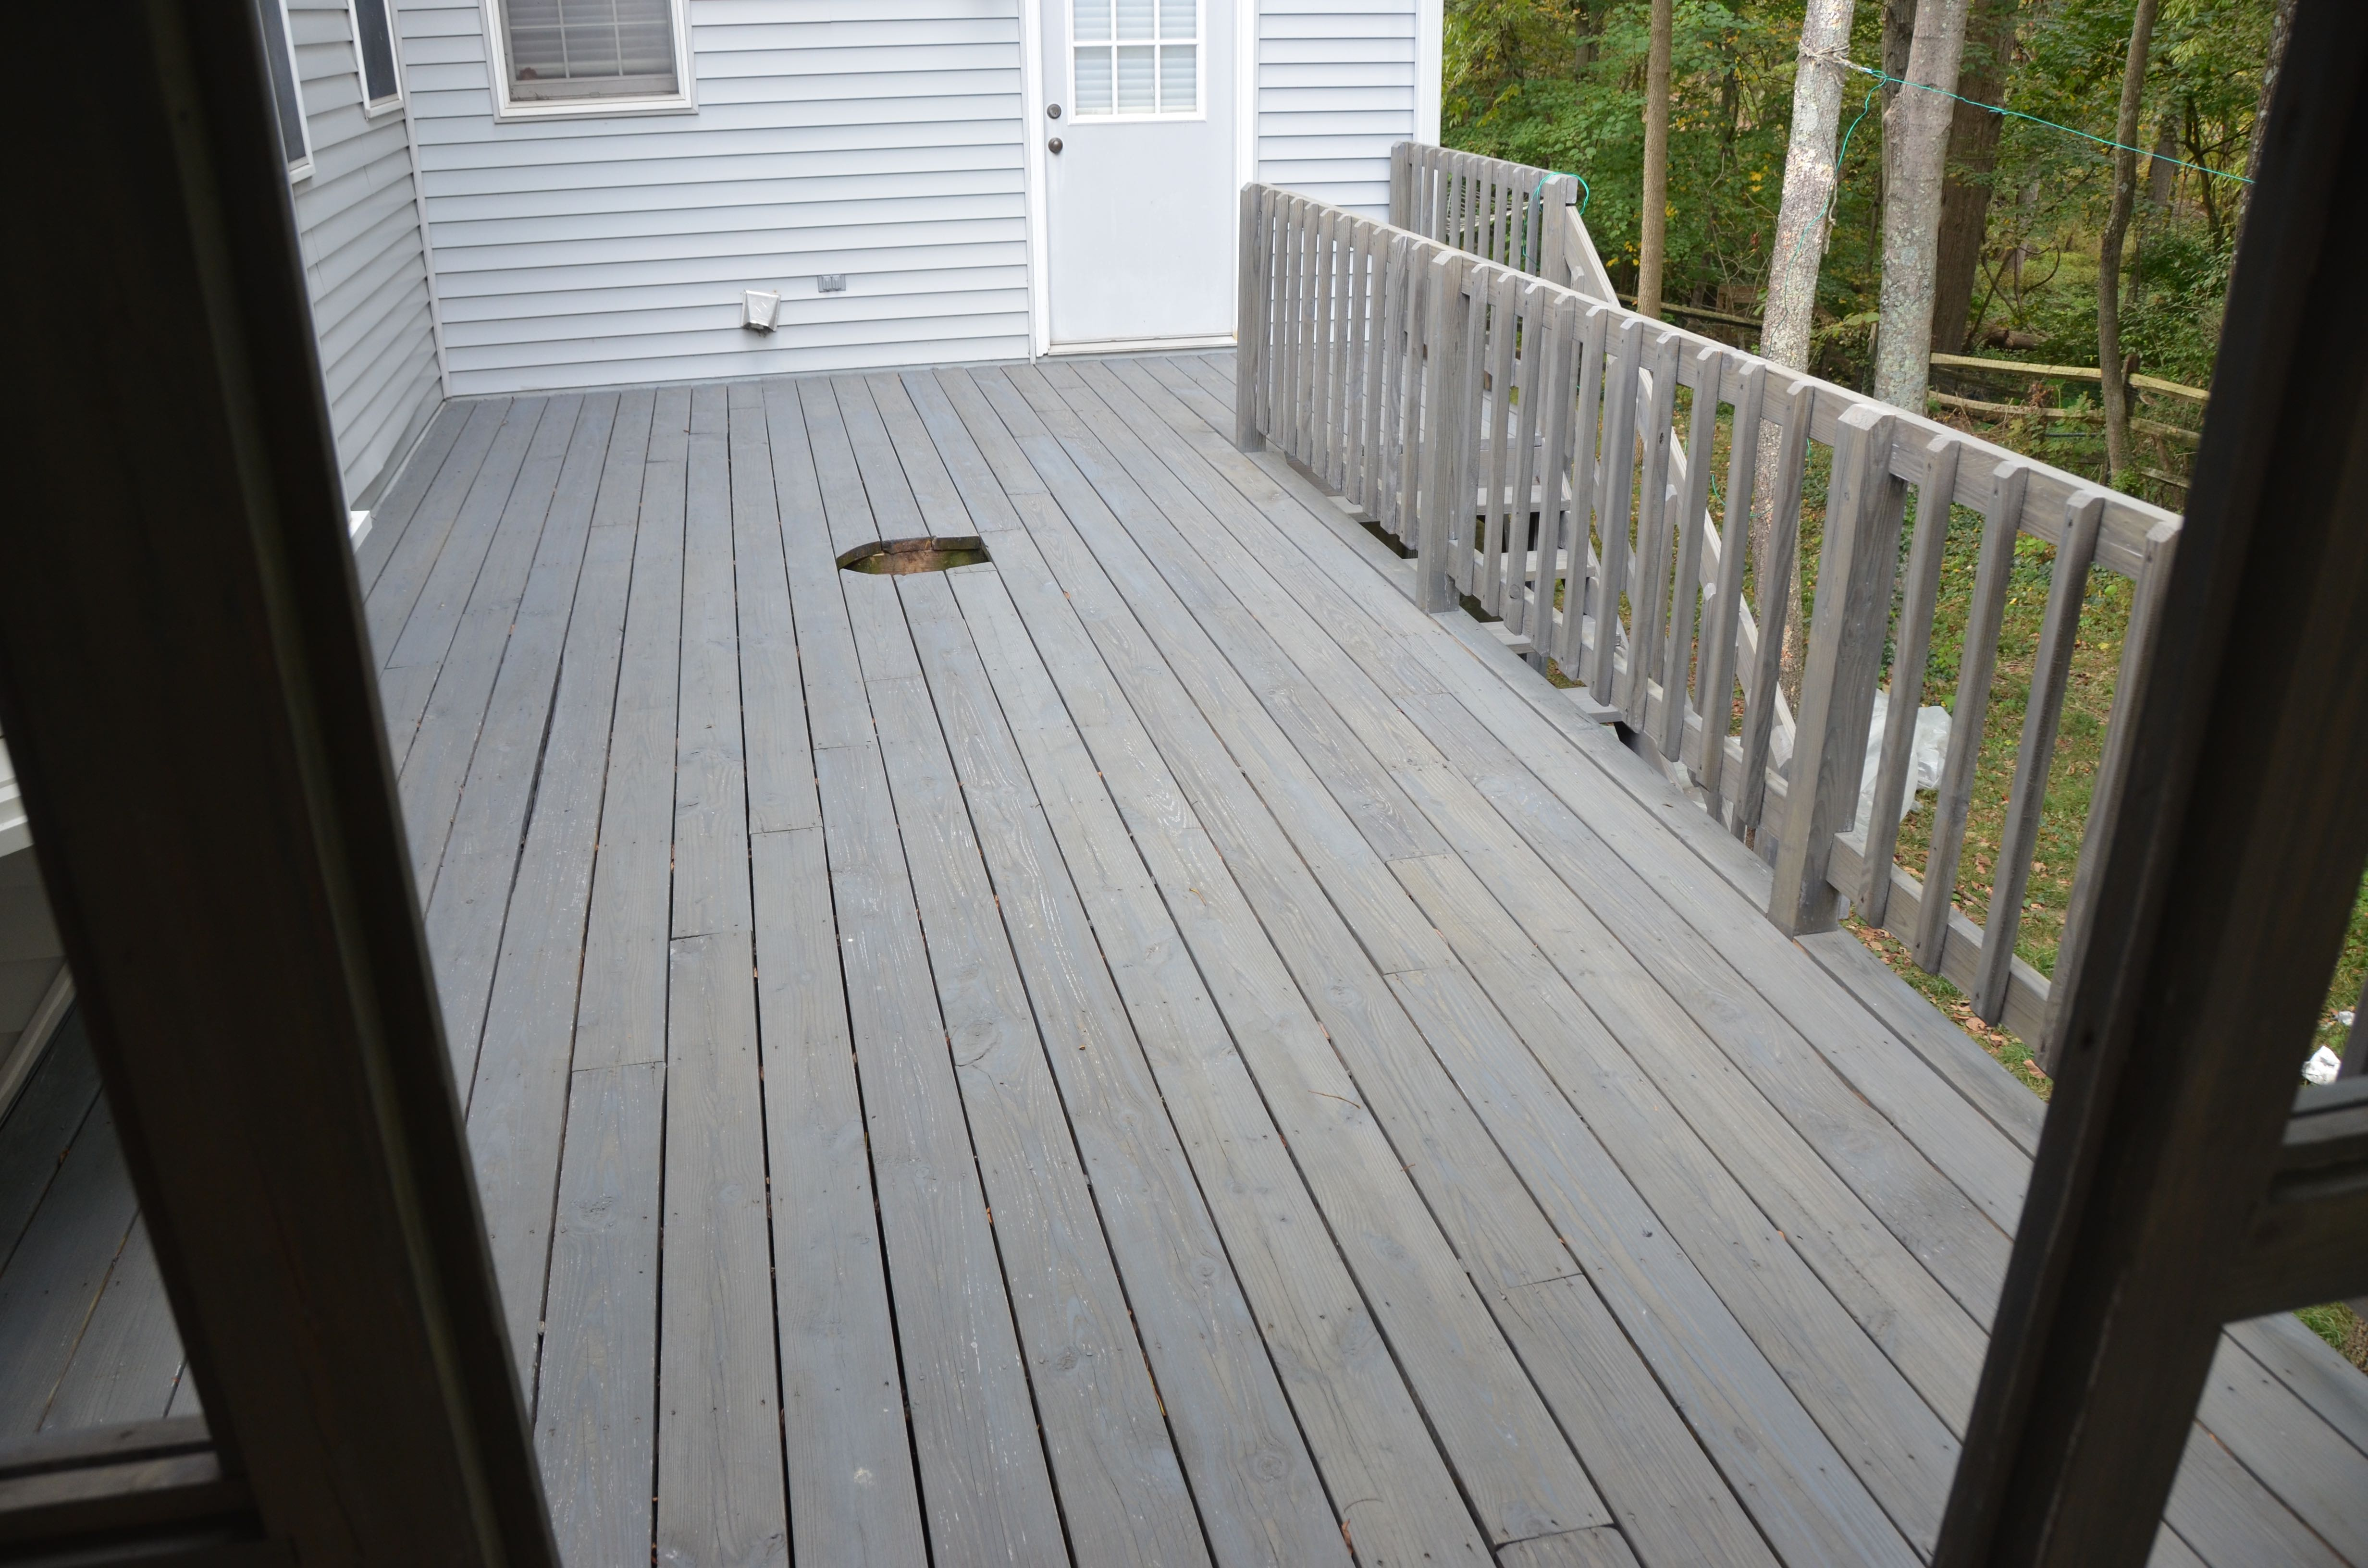 Deck Stain Reviews Great So Are You Looking For The Best Stain For Your Deck But Cannot Find